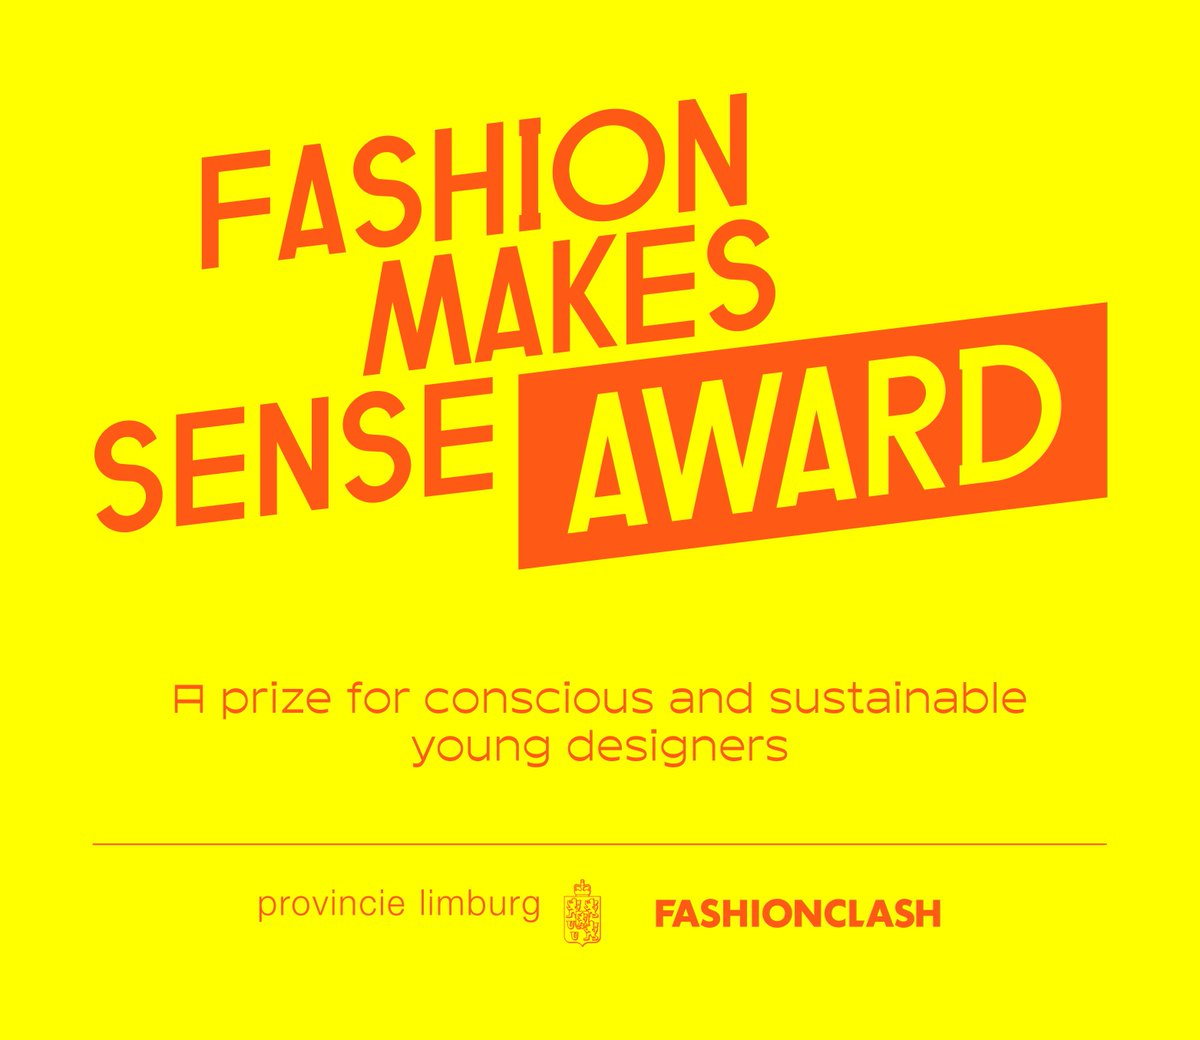 Vcuarts Qatar On Twitter Fashion Makes Sense Award An Award For Conscious New Generation Designers With Innovative Ideas For Sustainability Https T Co X9aoj3rfiw Https T Co 0bvv2bwzna